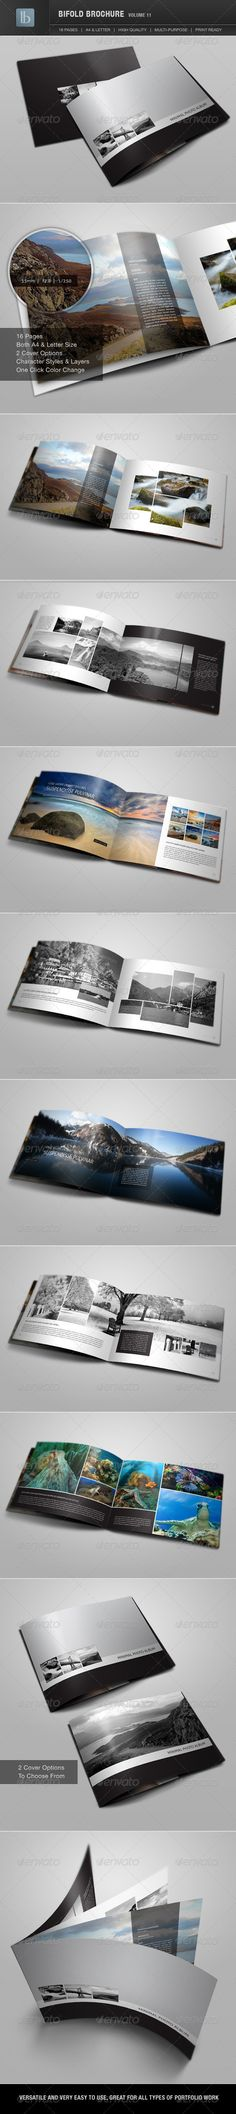 Bifold Brochure | Volume 11 - GraphicRiver Item for Sale